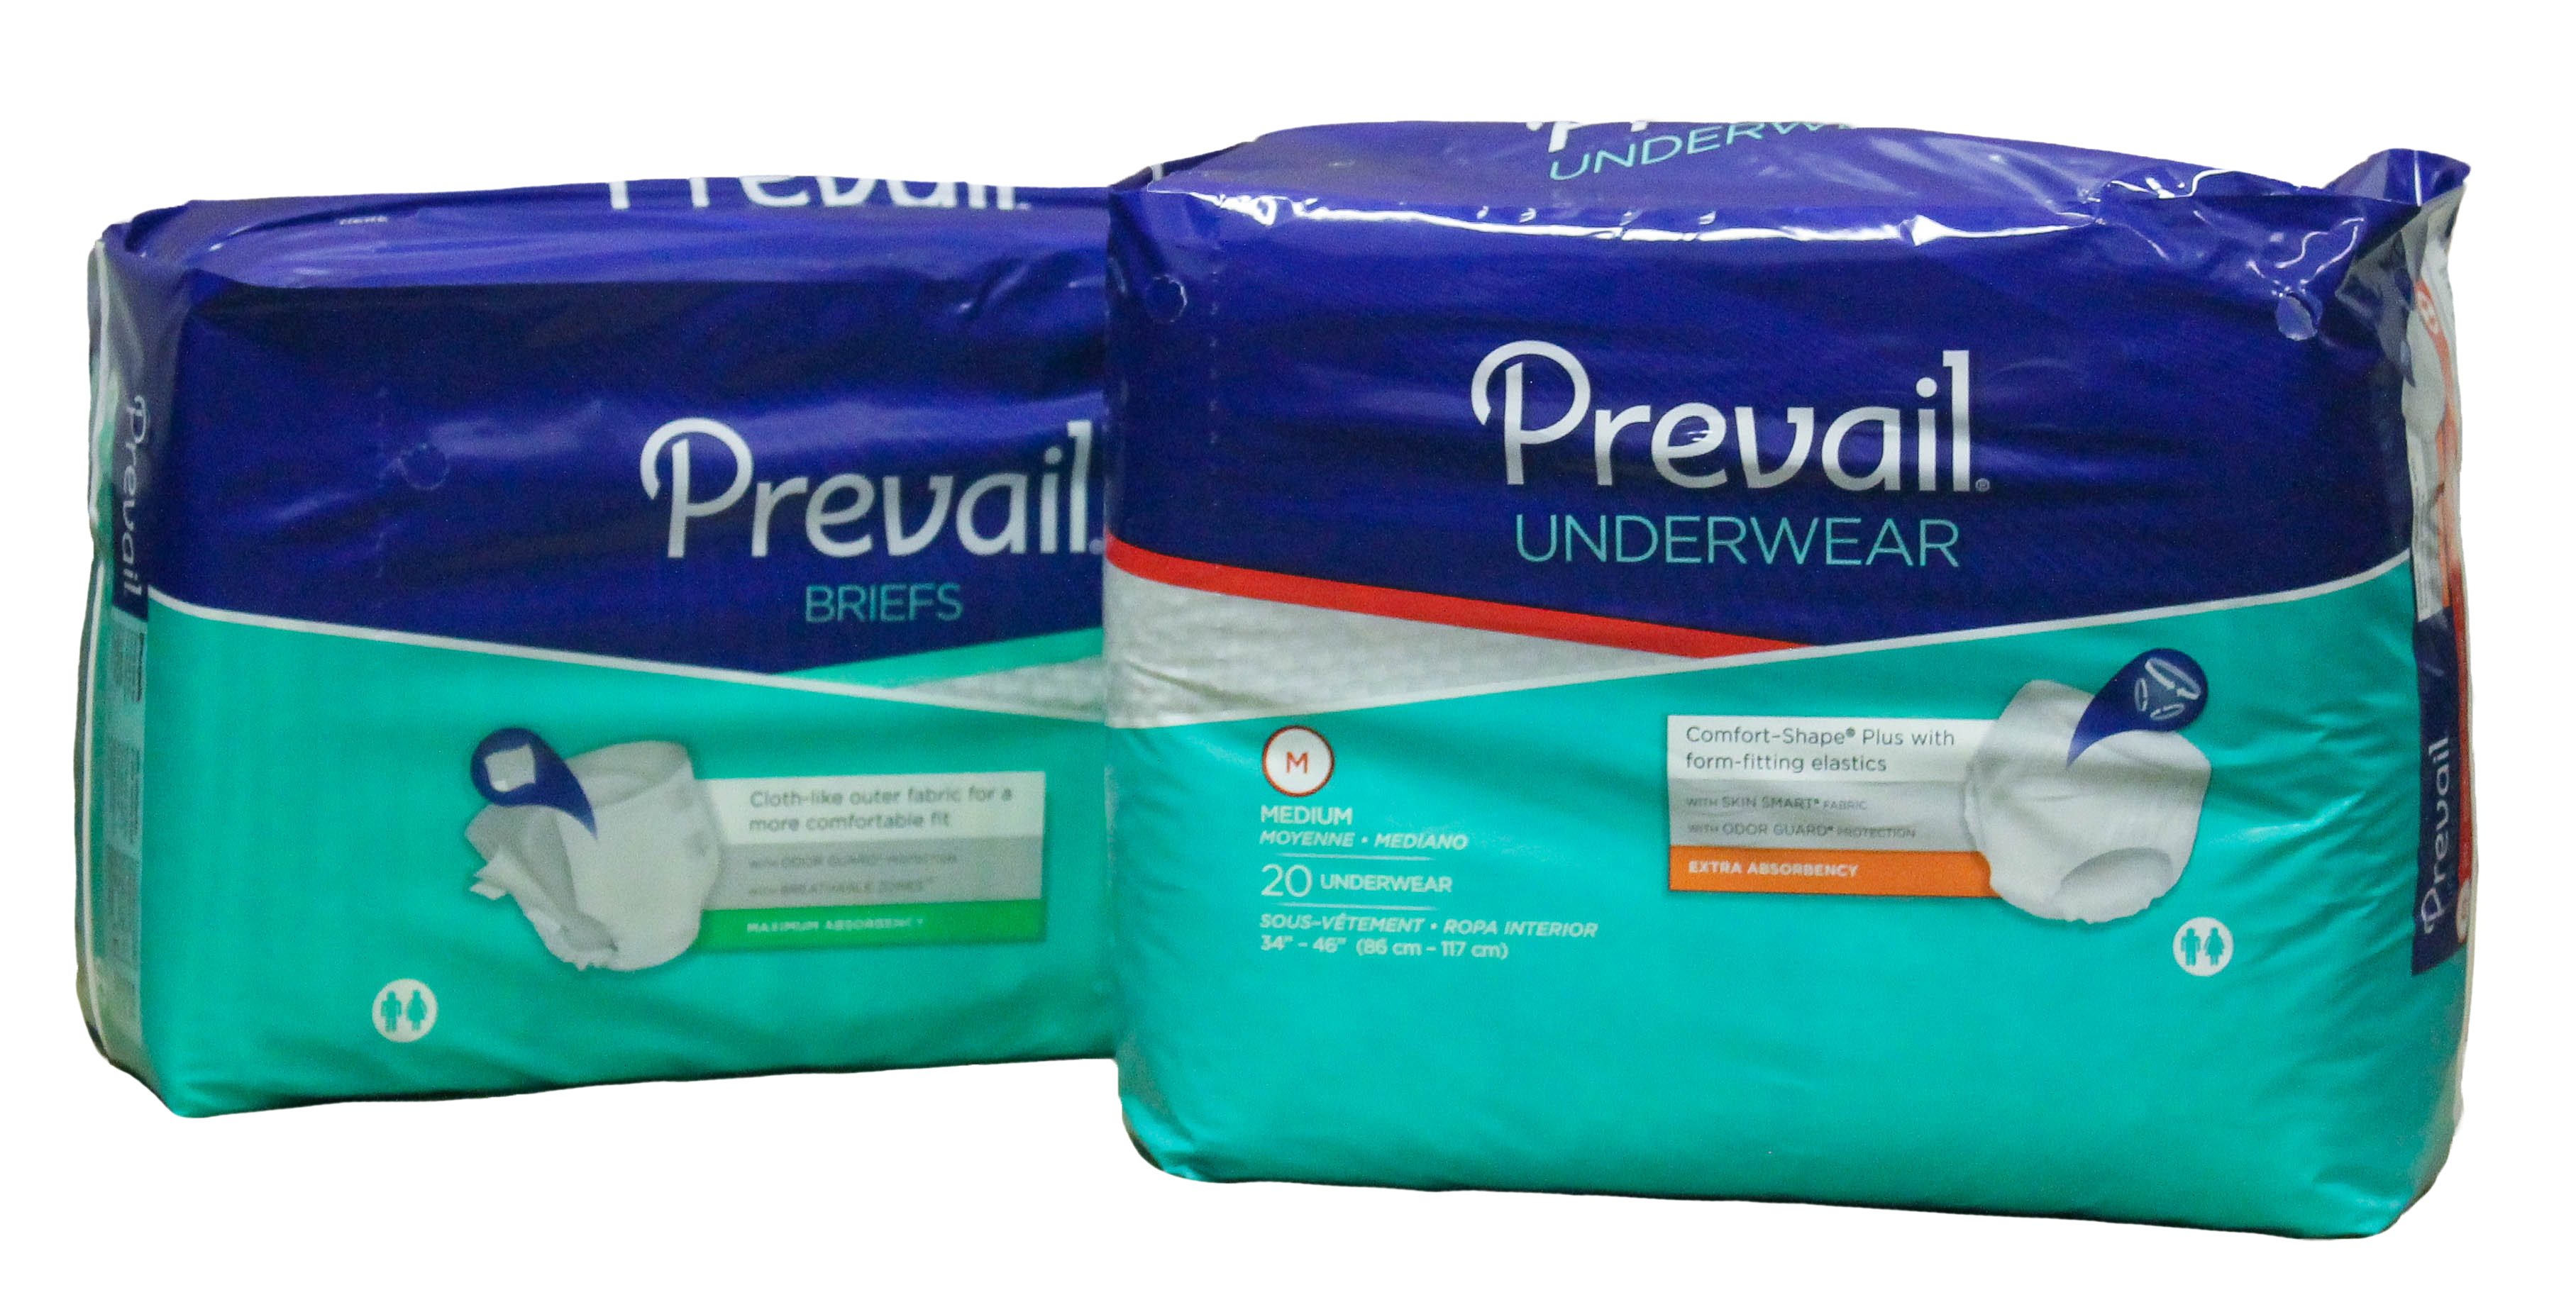 Prevail Briefs and Underwear